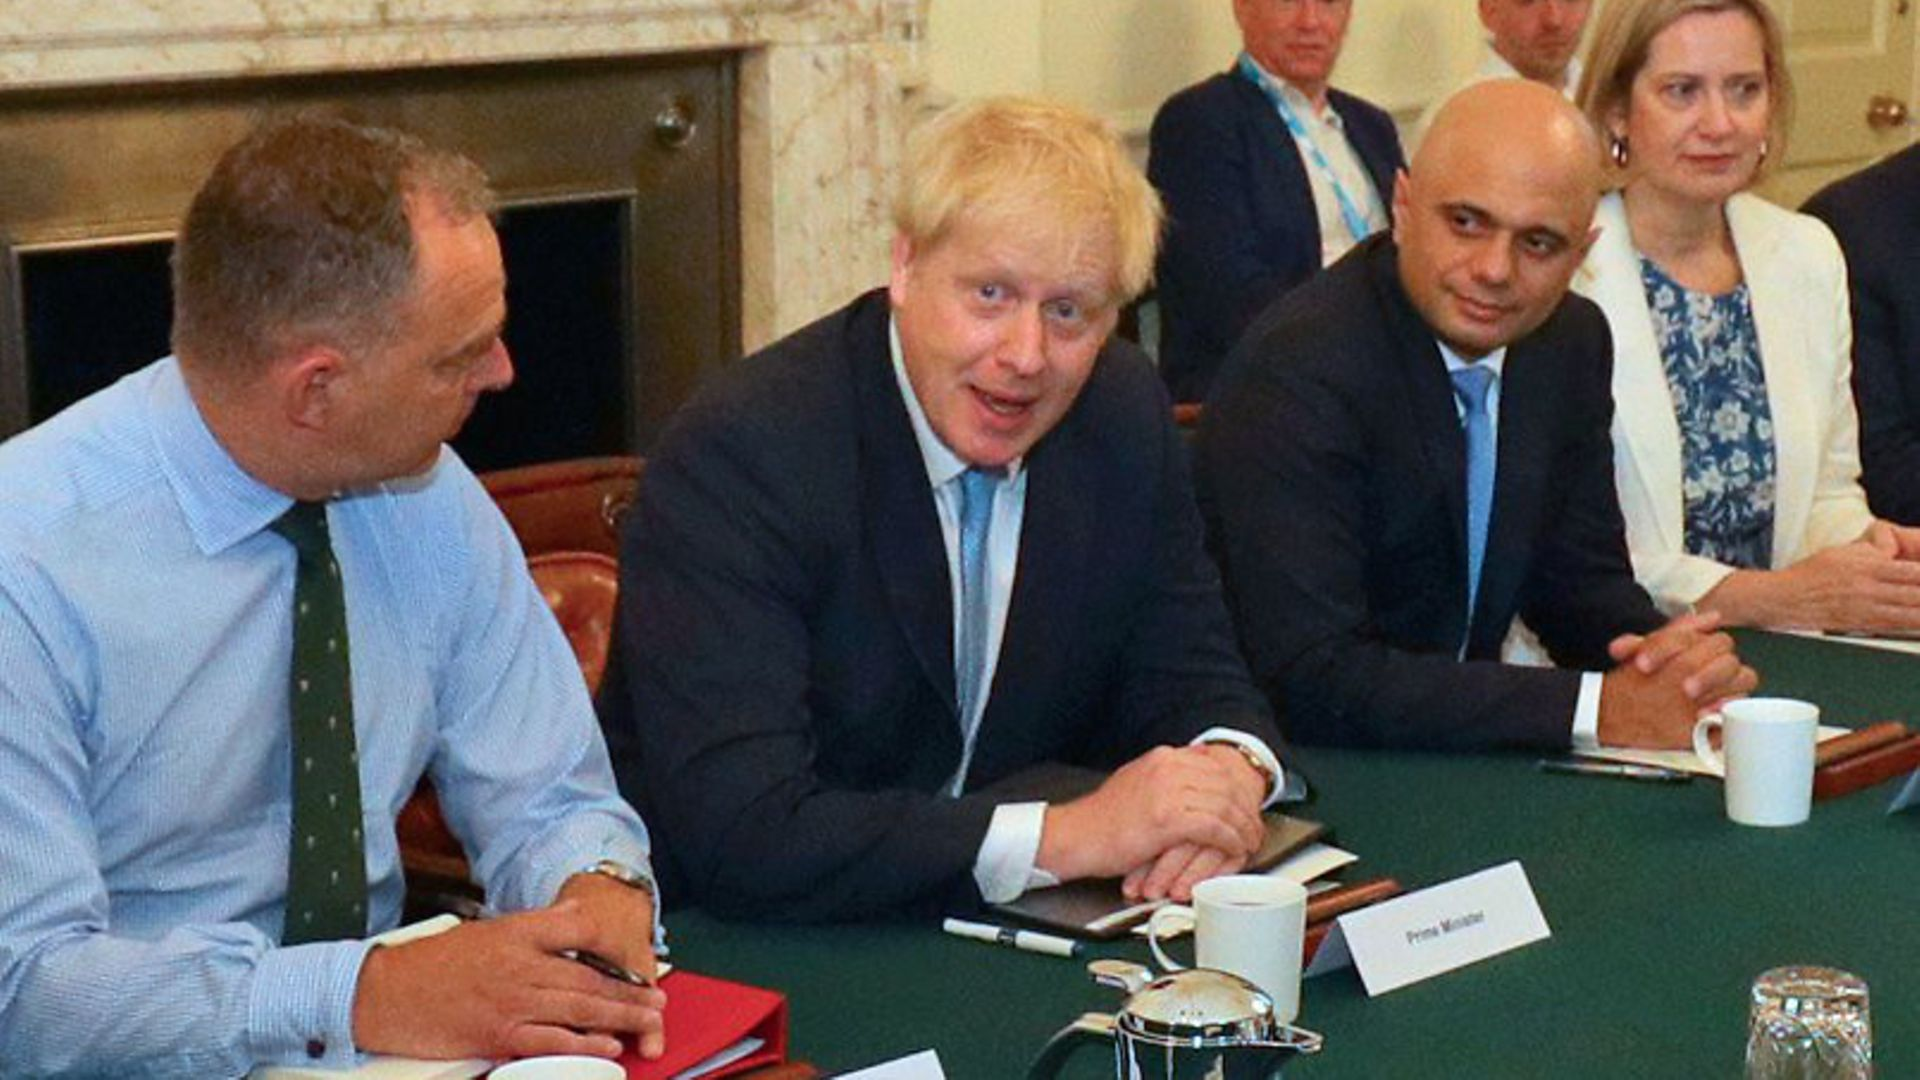 Boris Johnson with Sir Mark Sedwill, Sajid Javid, Amber Rudd, and Lee Cain (back right) as the PM holds his first cabinet meeting at Downing Street - Credit: PA Wire/PA Images